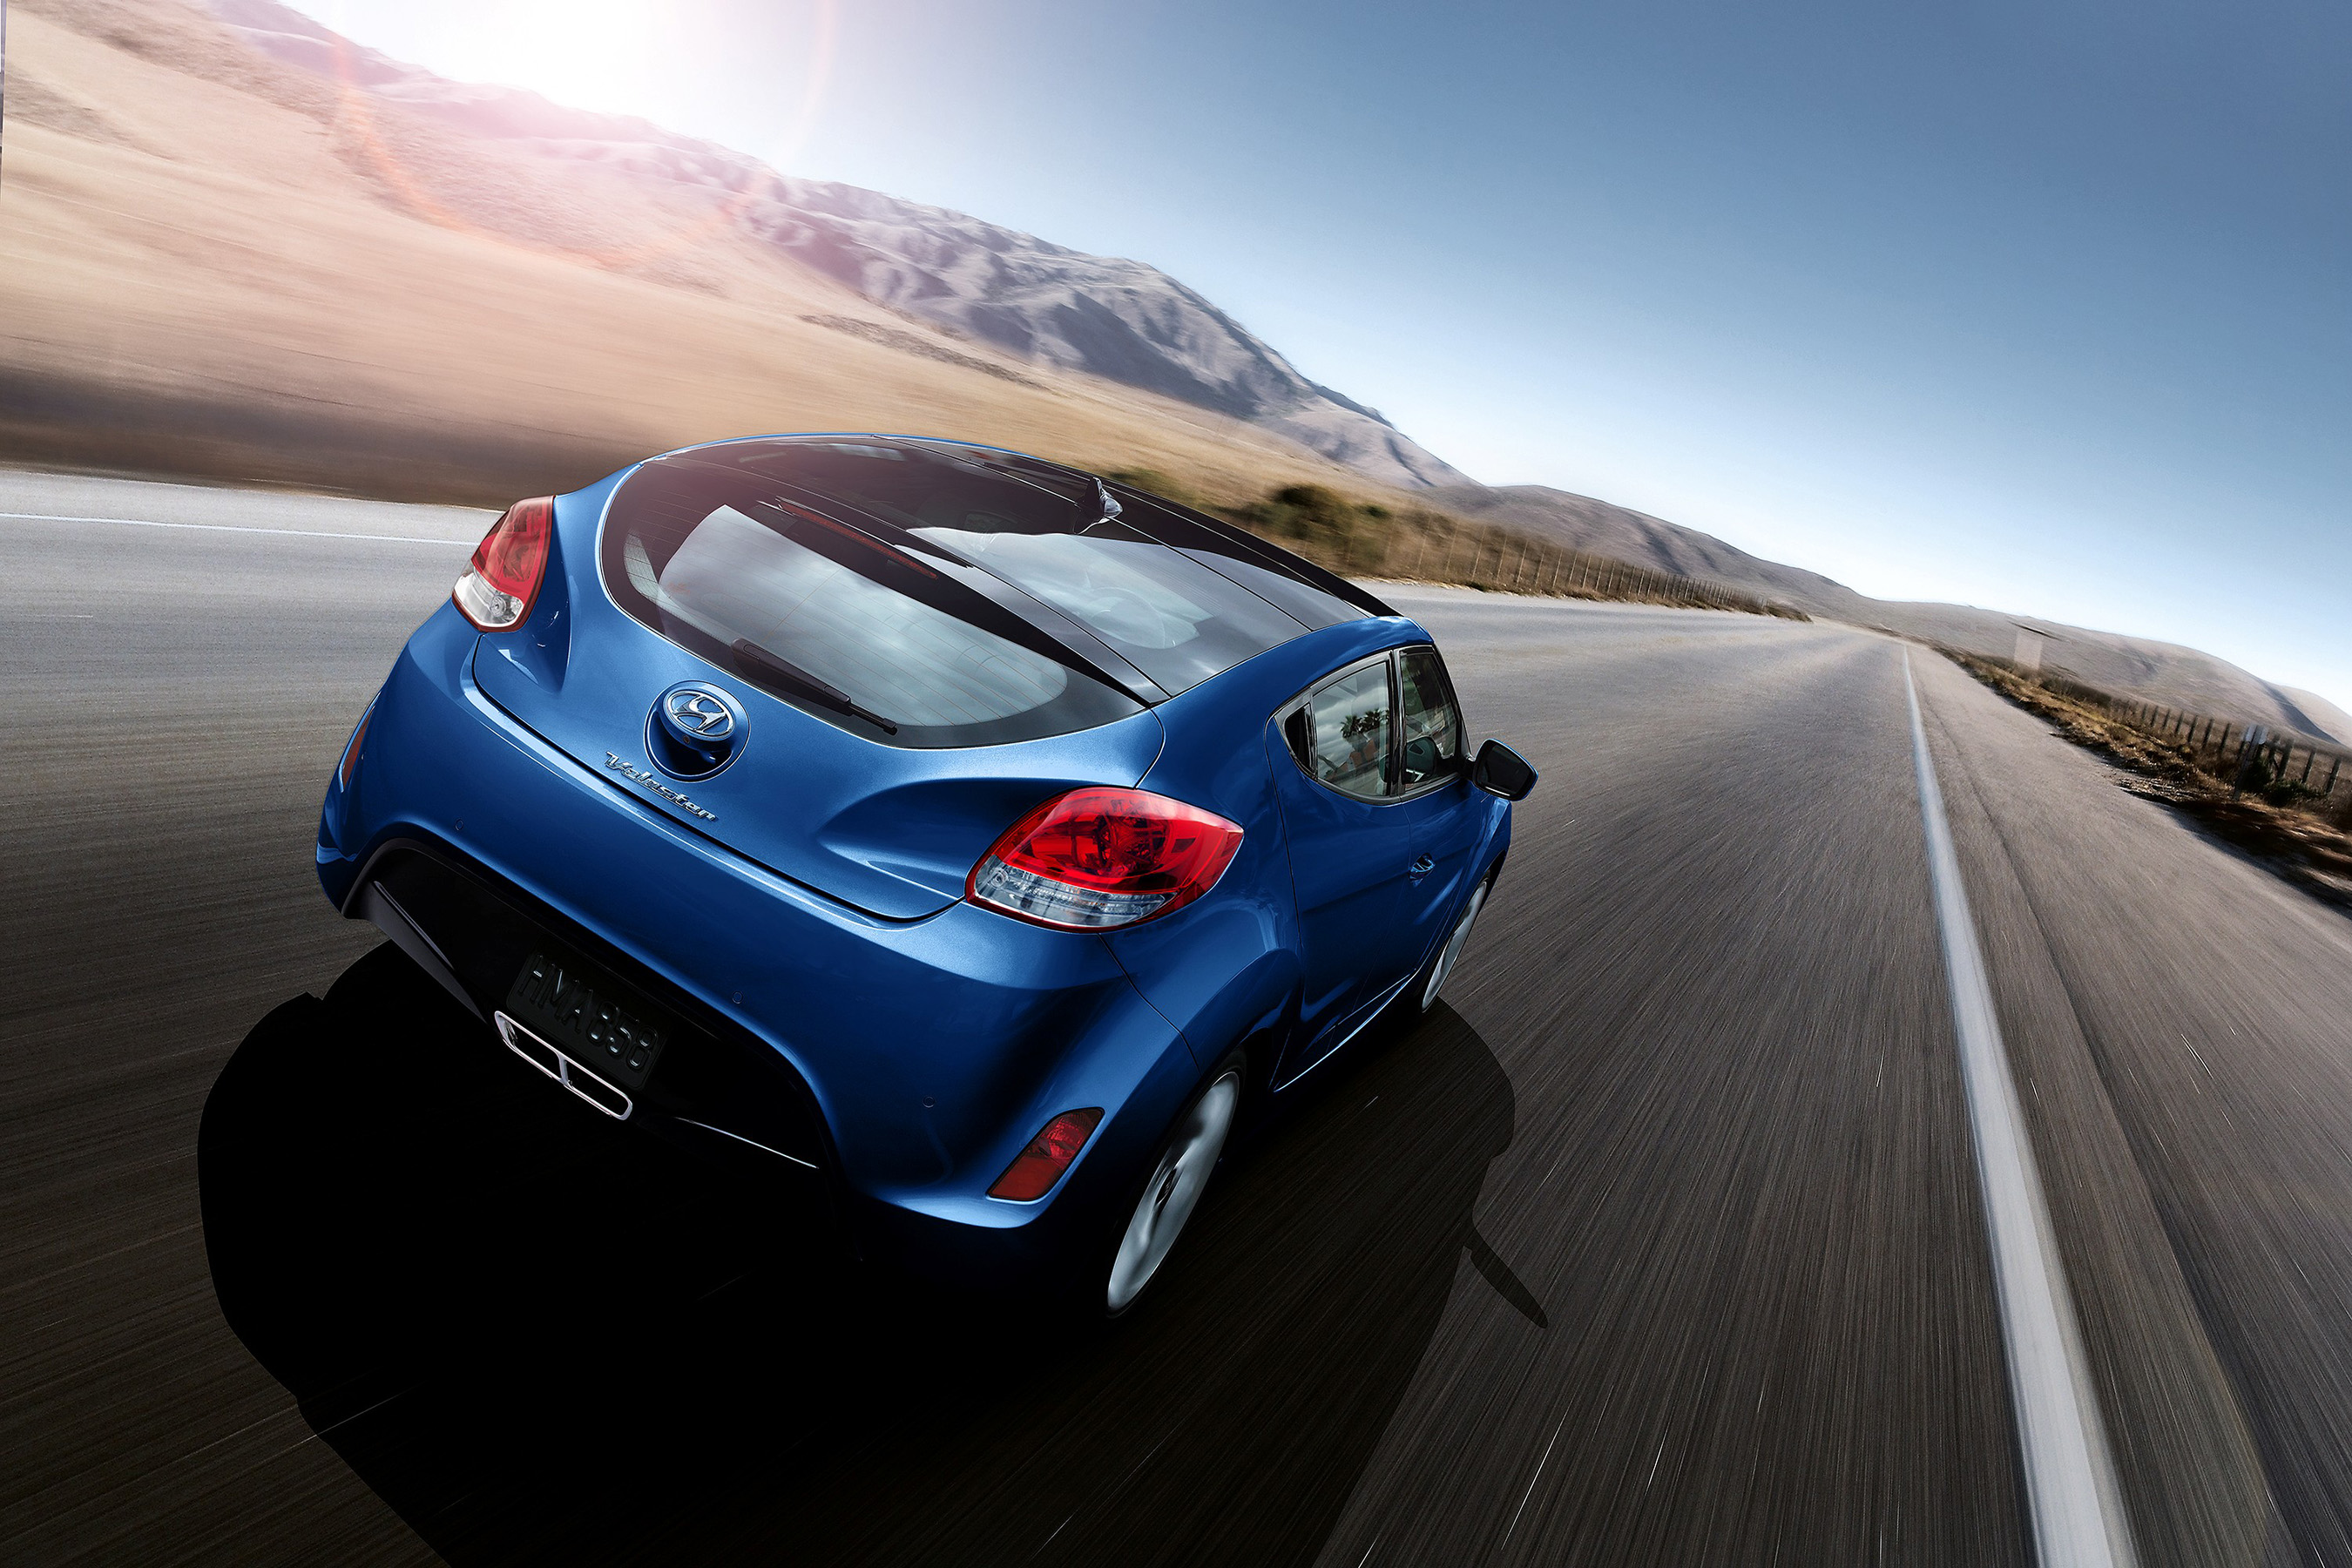 KBB.com 10 Coolest Cars: The Veloster is among the most uniquely configured cars on the road, but what makes it so compelling is it mixes standout style with surprising practicality & affordability.